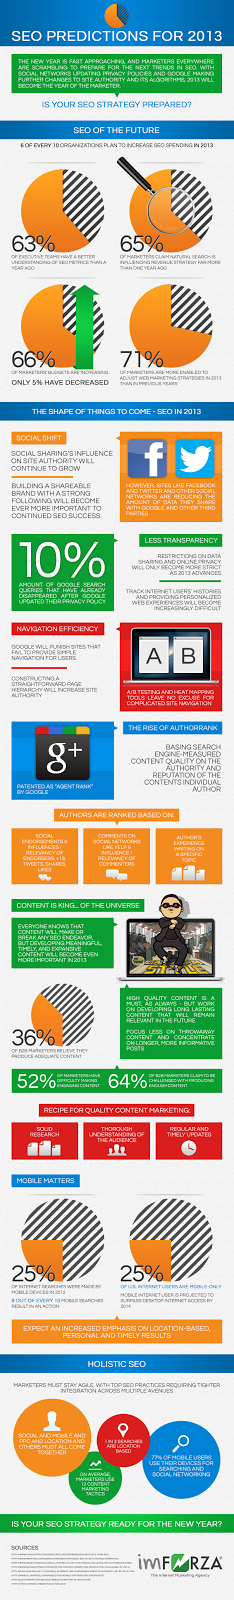 seo predictions 2013